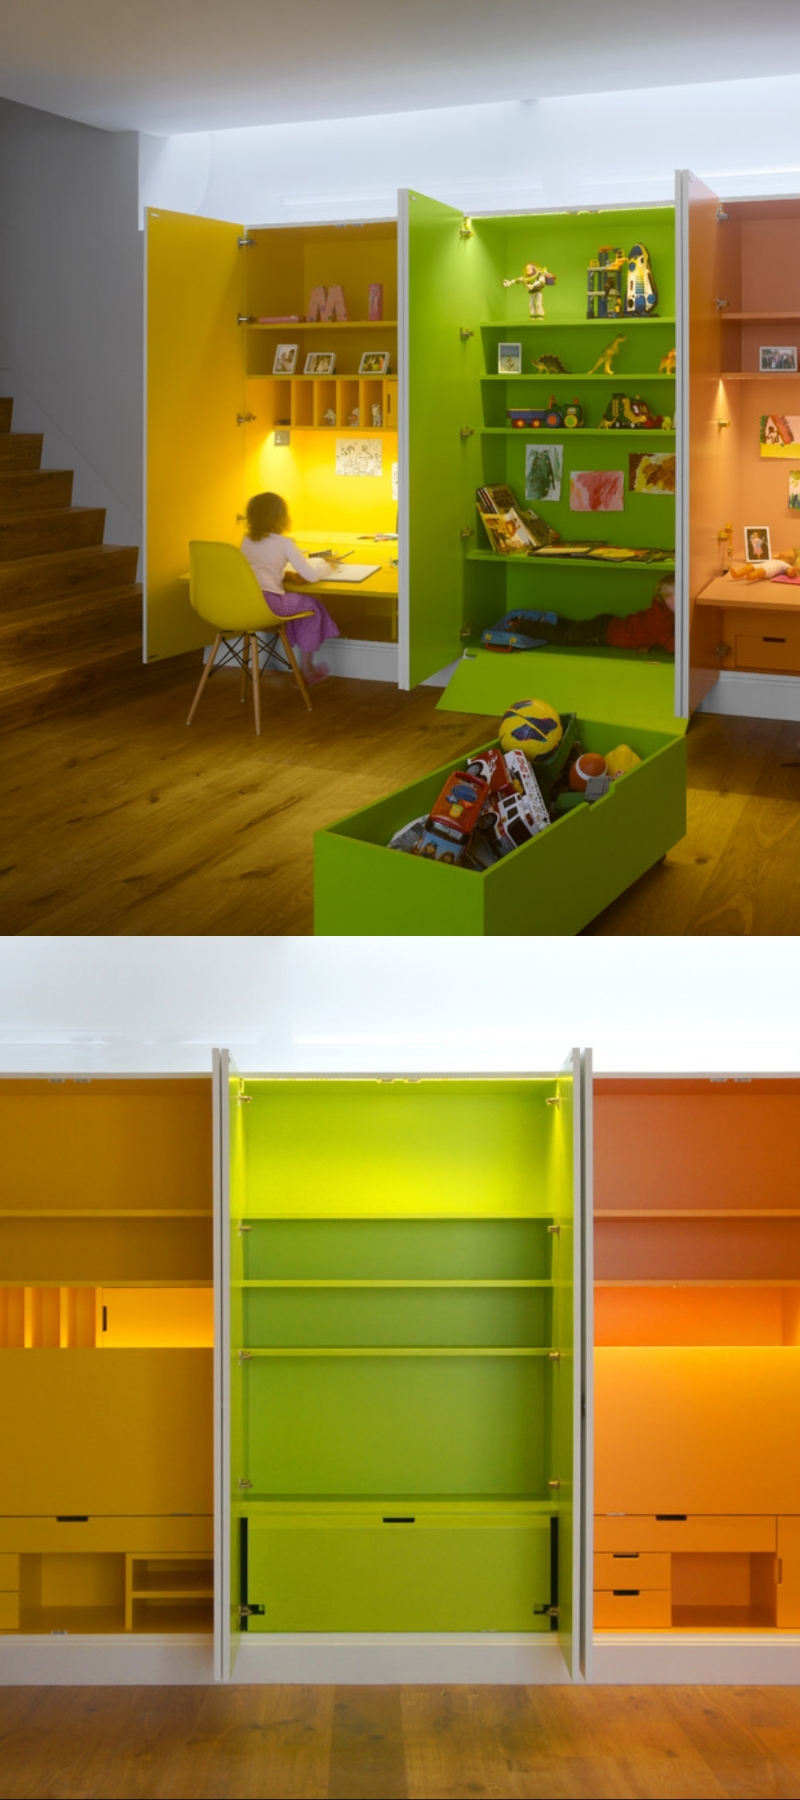 Small 10x10 Study Room Layout: 30+ Fresh Study Room Design Ideas (Guide & Tips For